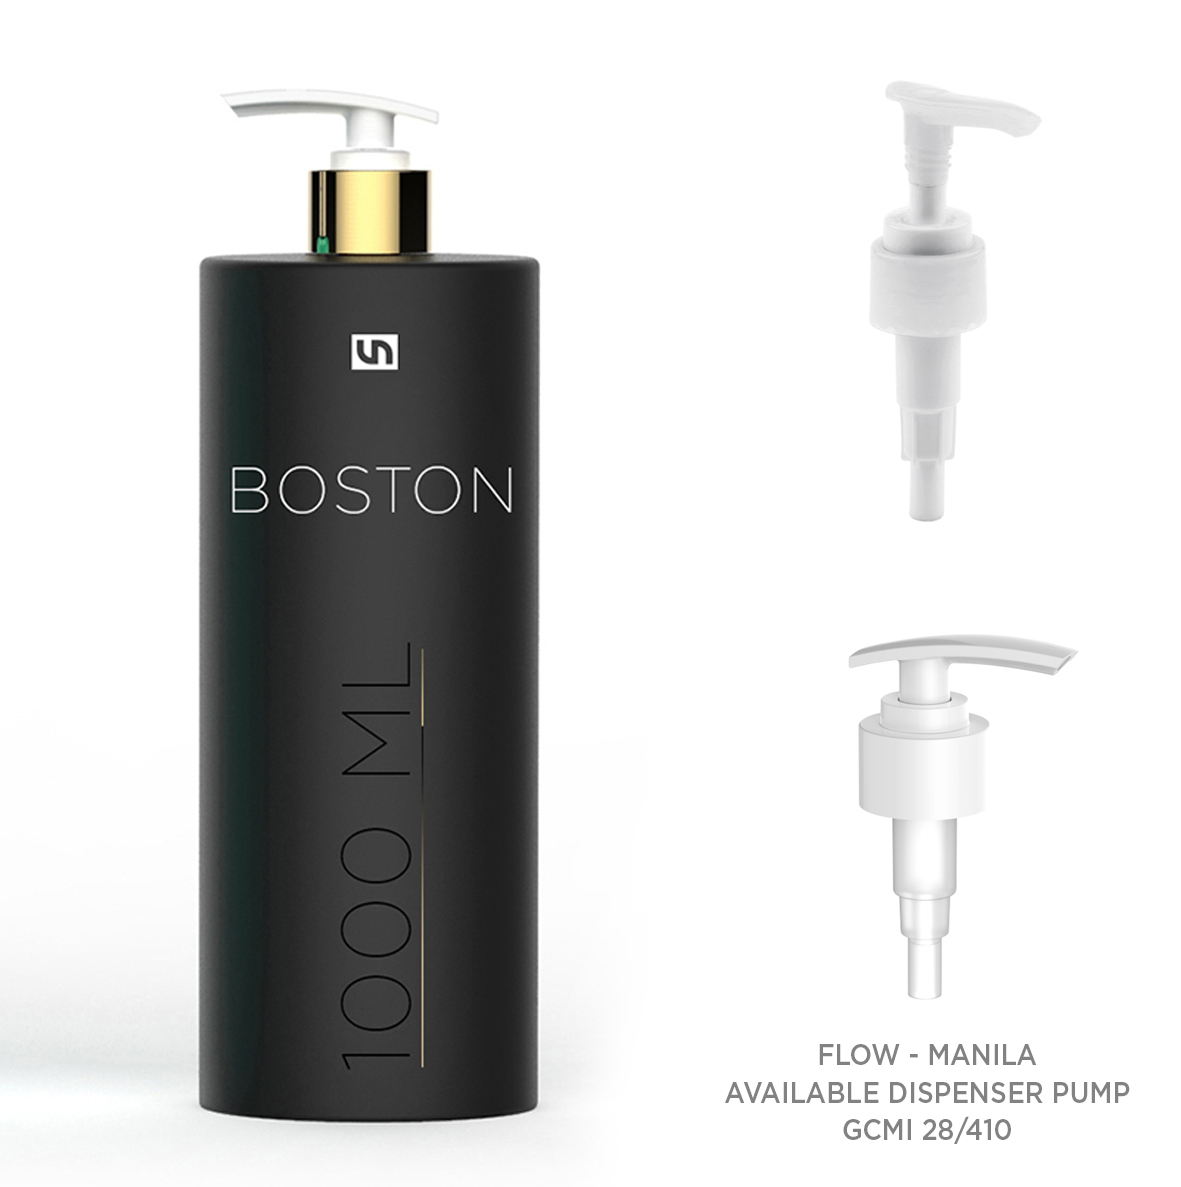 BOSTON 1000 ml 1 liter plastic bottles pump vetronaviglio